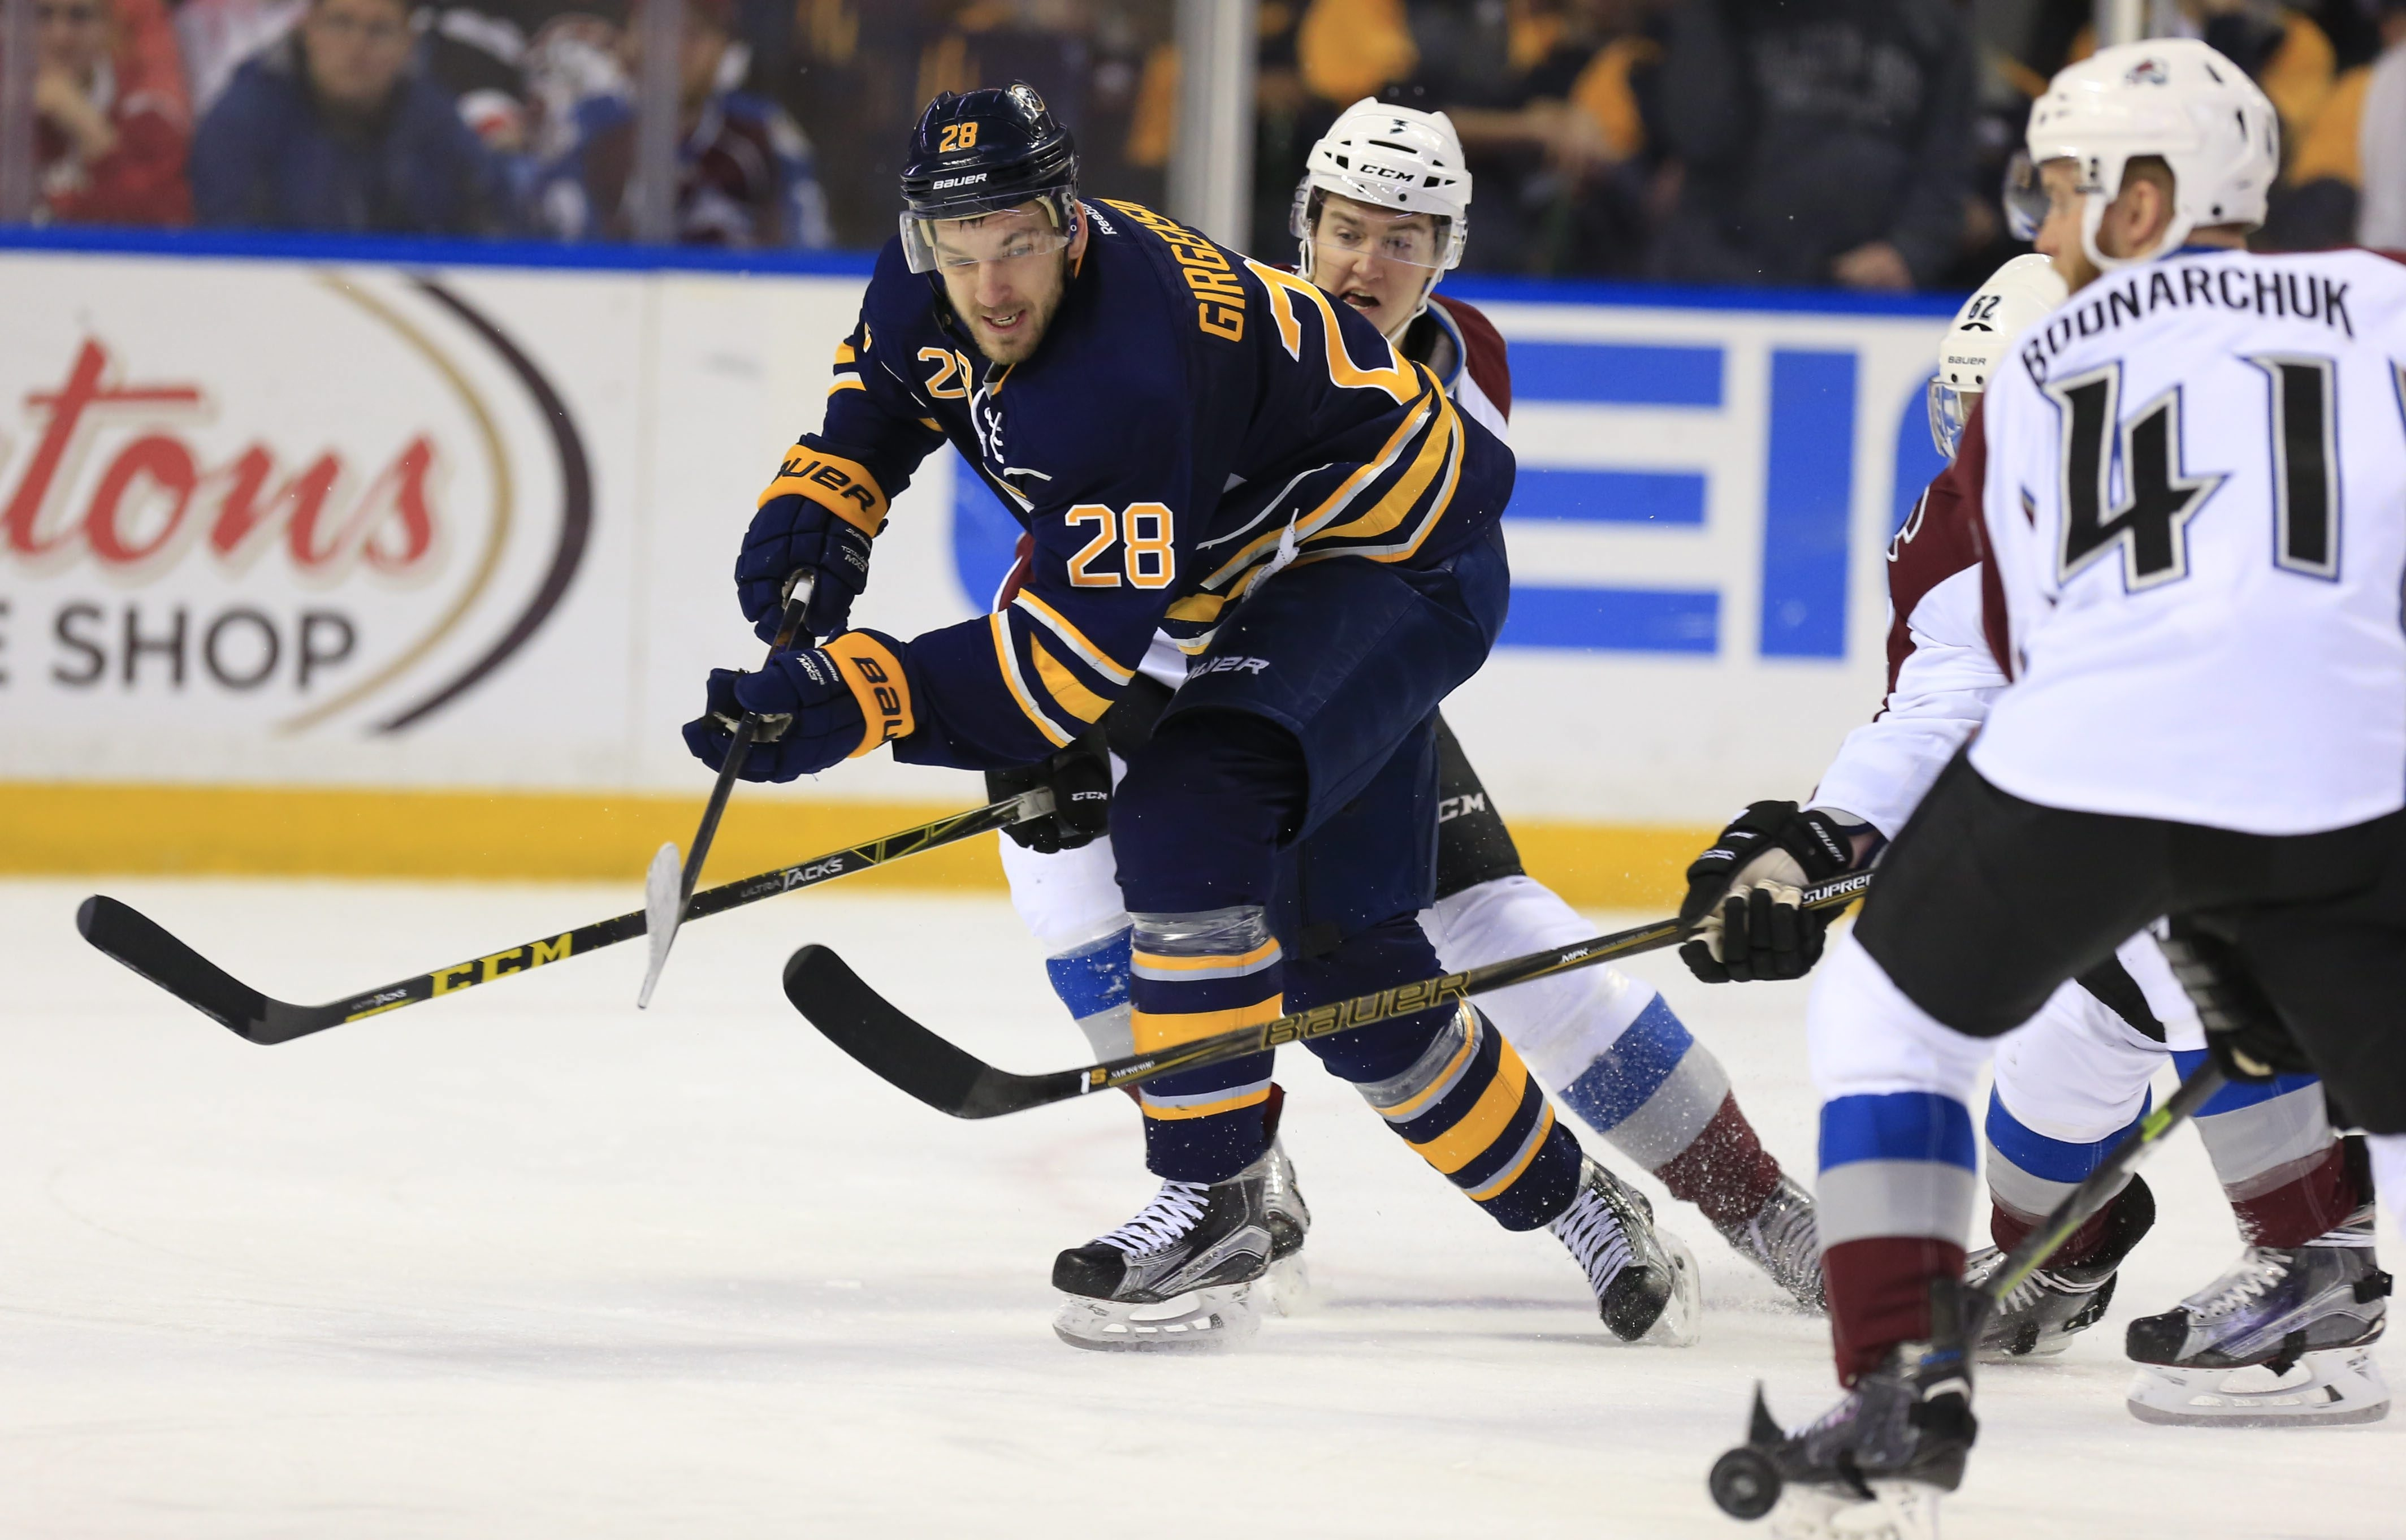 Zemgus Girgensons, shown facing the Colorado Avalanche last season, will return to the lineup from injury to face the Avs on Saturday (Harry Scull Jr./Buffalo News file photo).